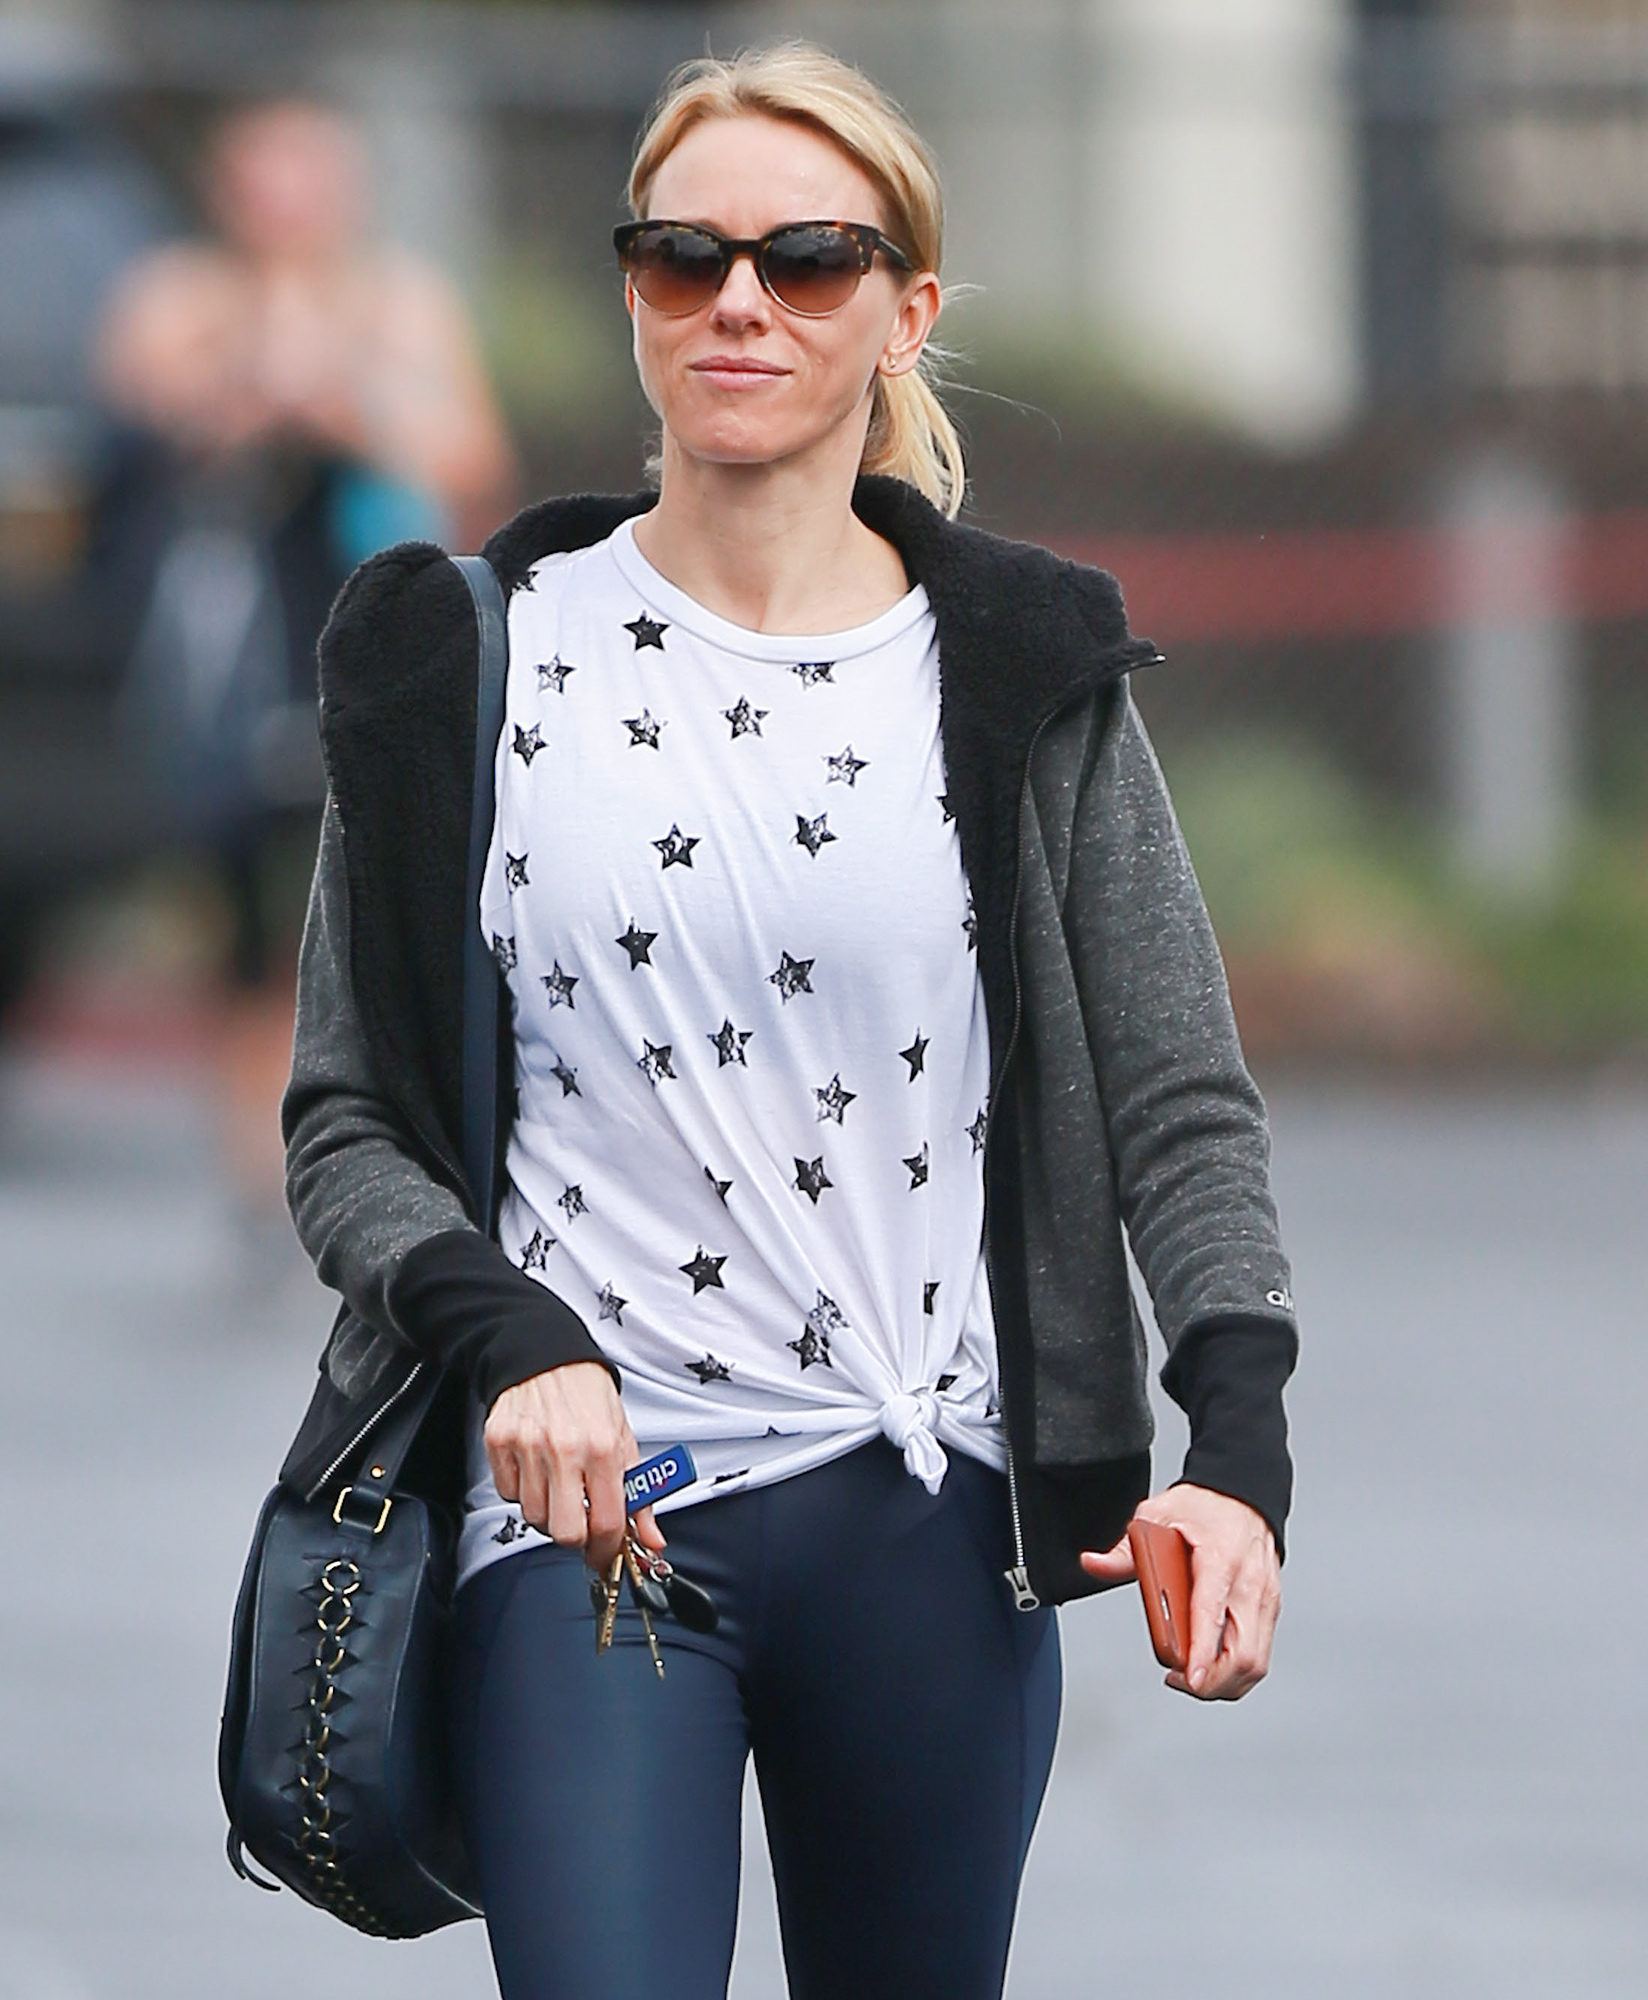 Exclusive... Naomi Watts Gets Her Workout In